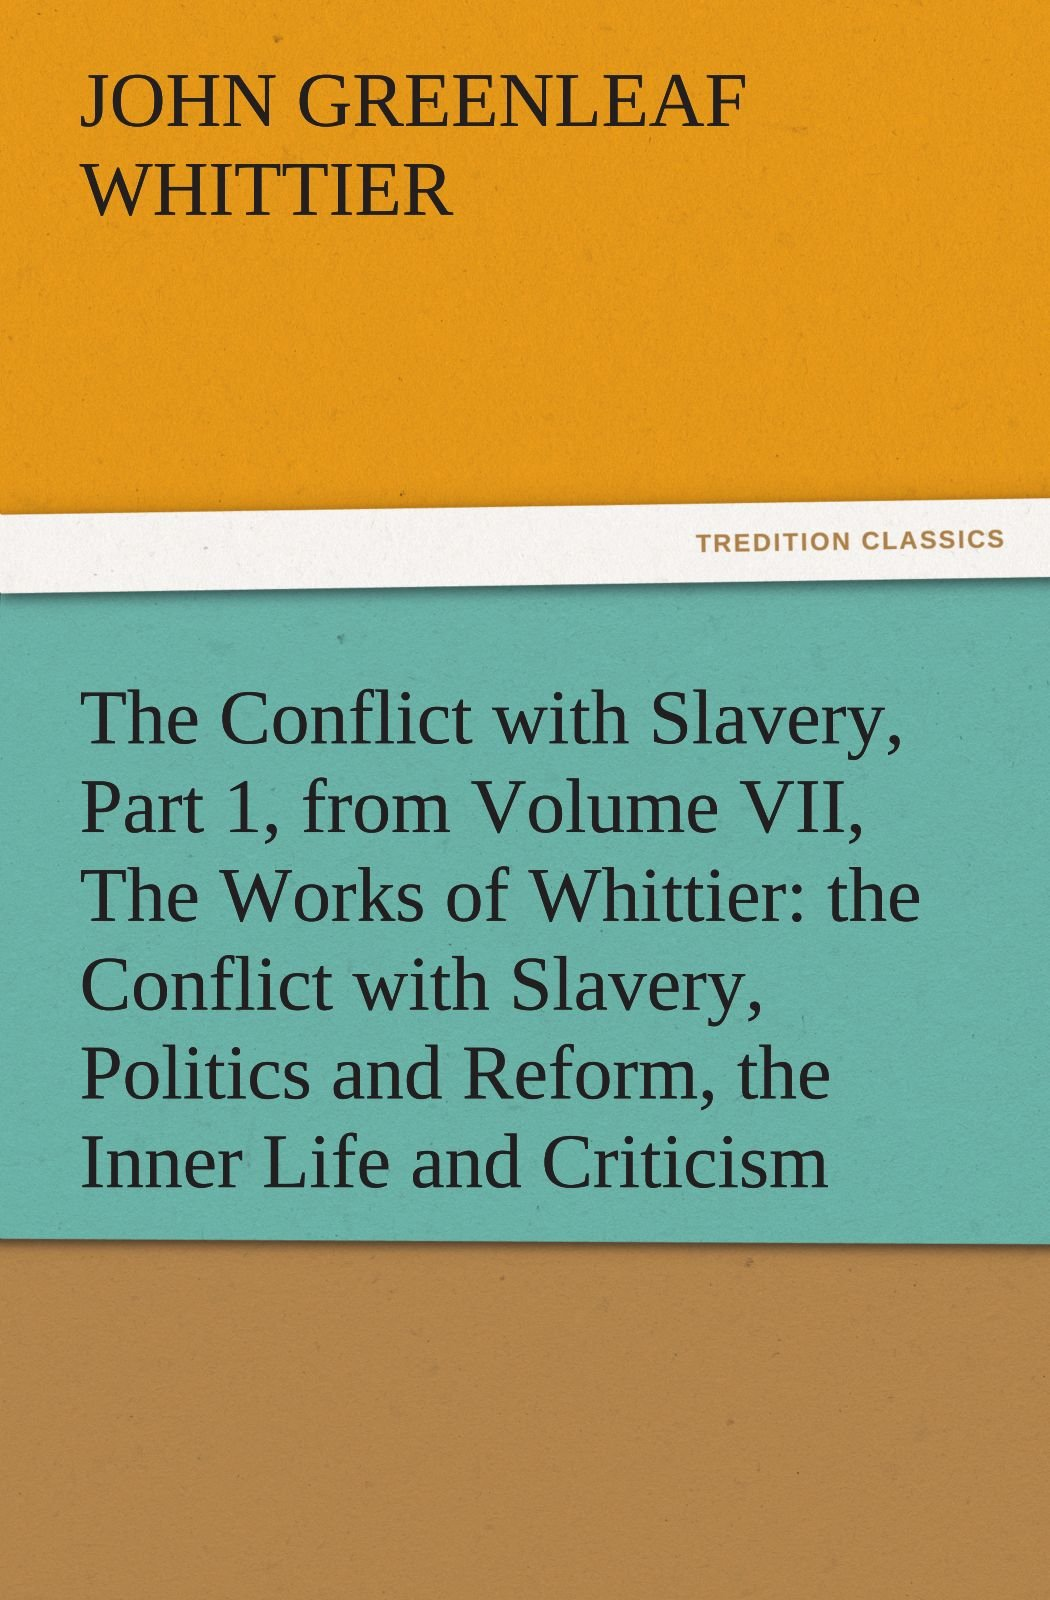 Download The Conflict with Slavery, Part 1, from Volume VII, The Works of Whittier: the Conflict with Slavery, Politics and Reform, the Inner Life and Criticism (TREDITION CLASSICS) pdf